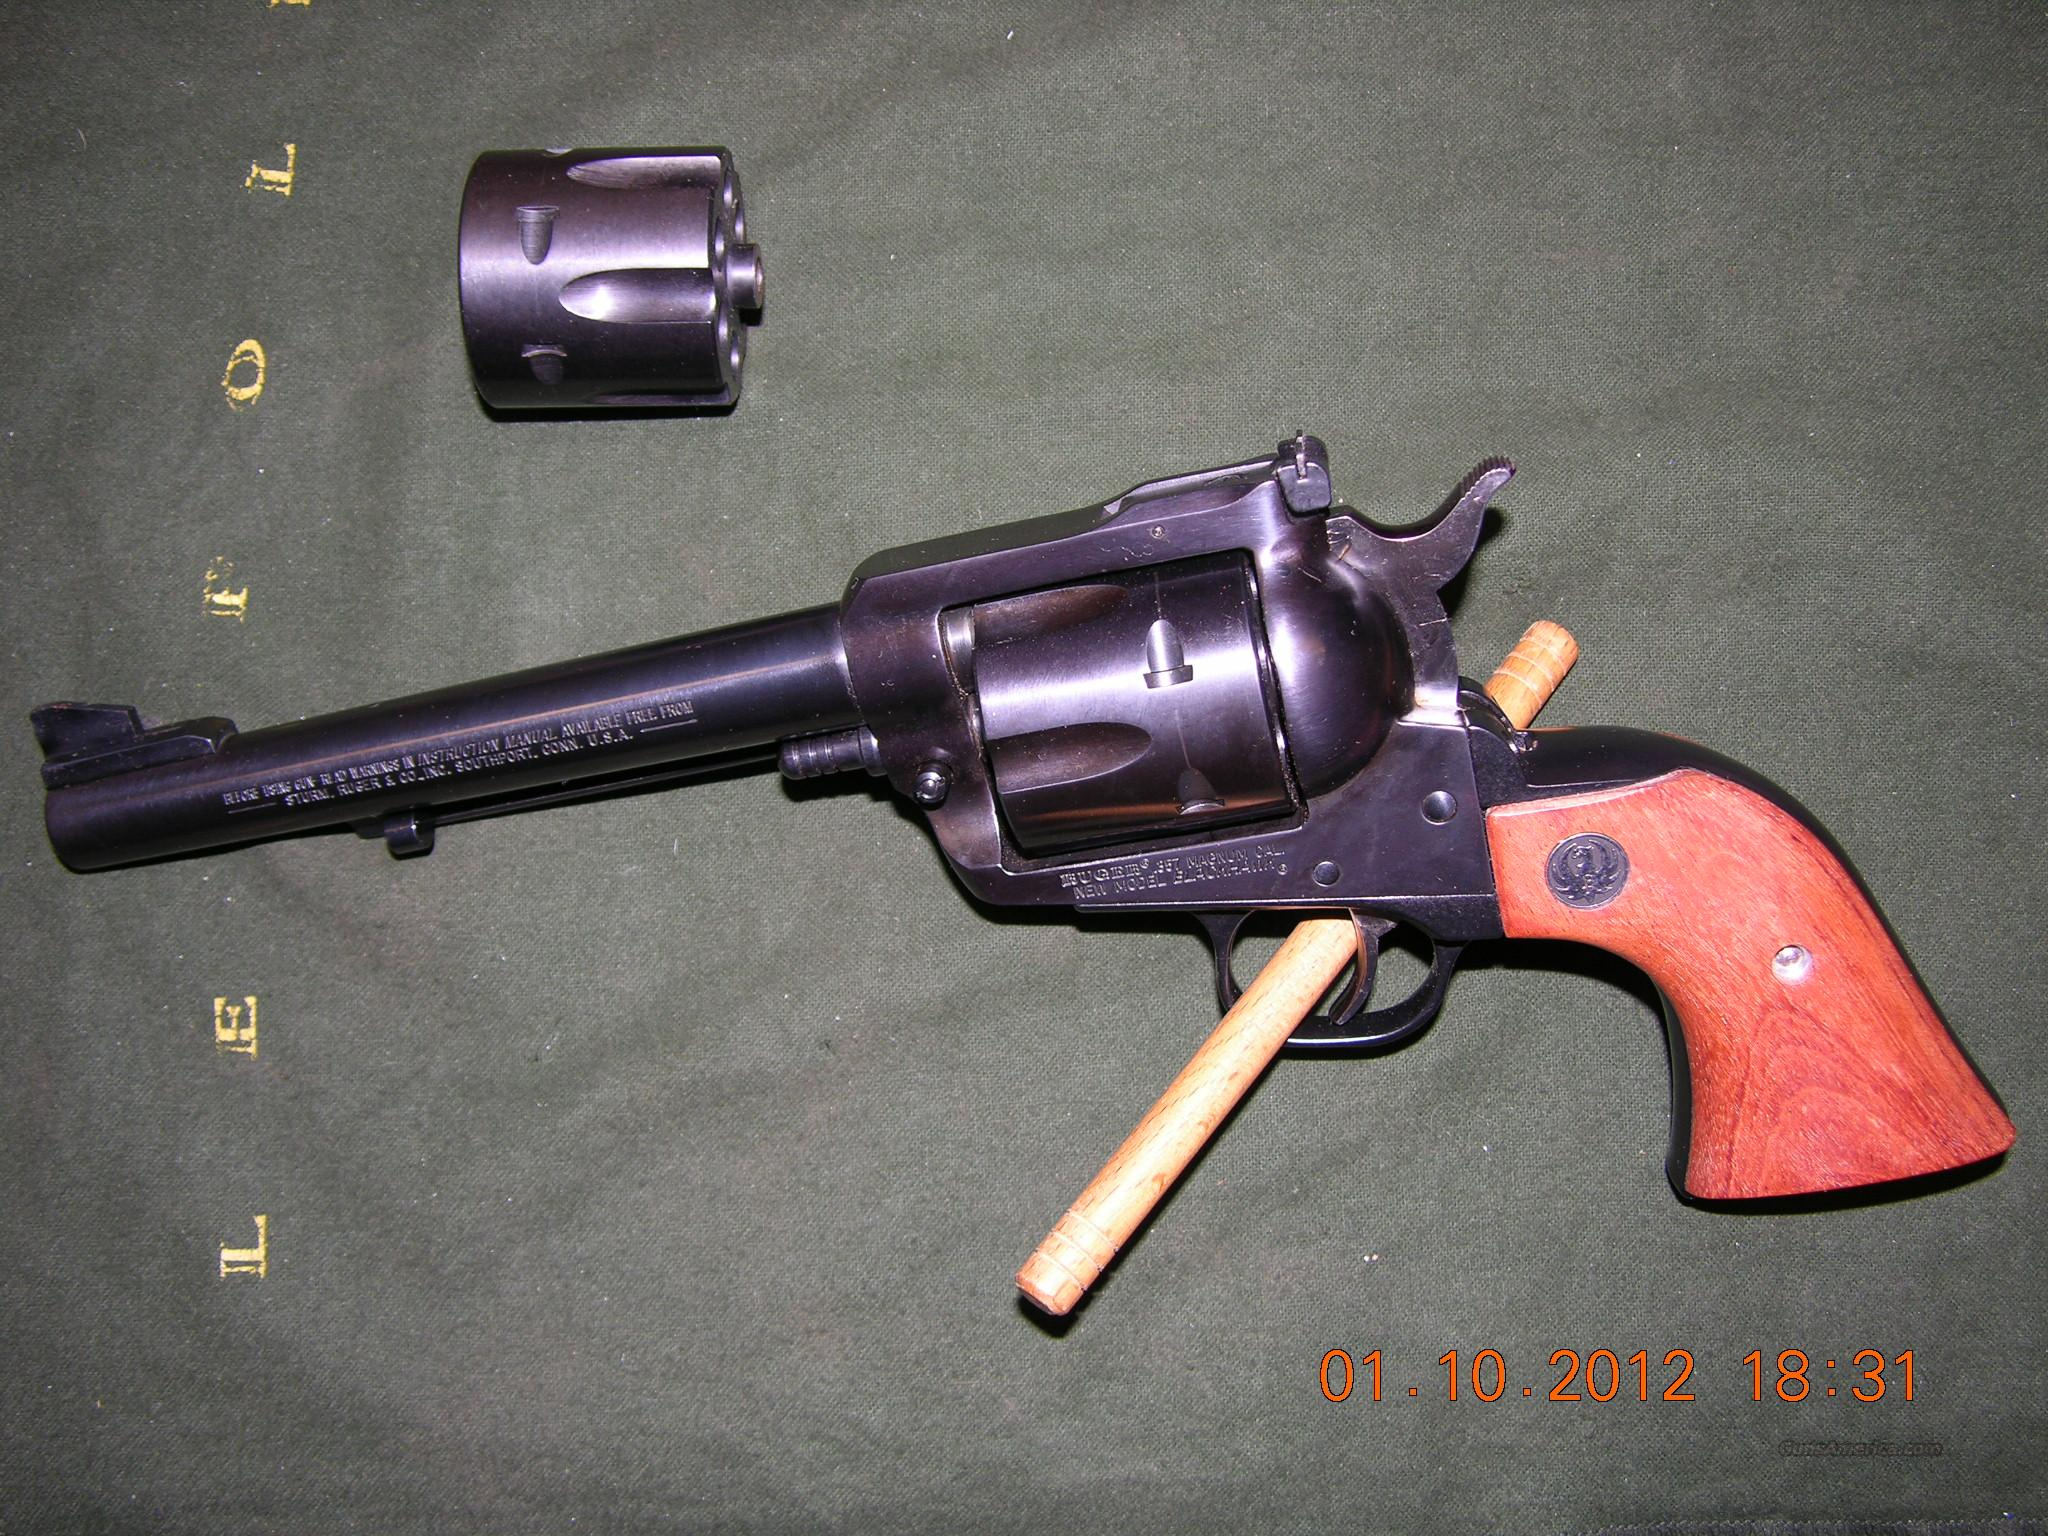 Ruger New Model Blackhawk .357 Mag/9mm Convertible  Guns > Pistols > Ruger Single Action Revolvers > Blackhawk Type